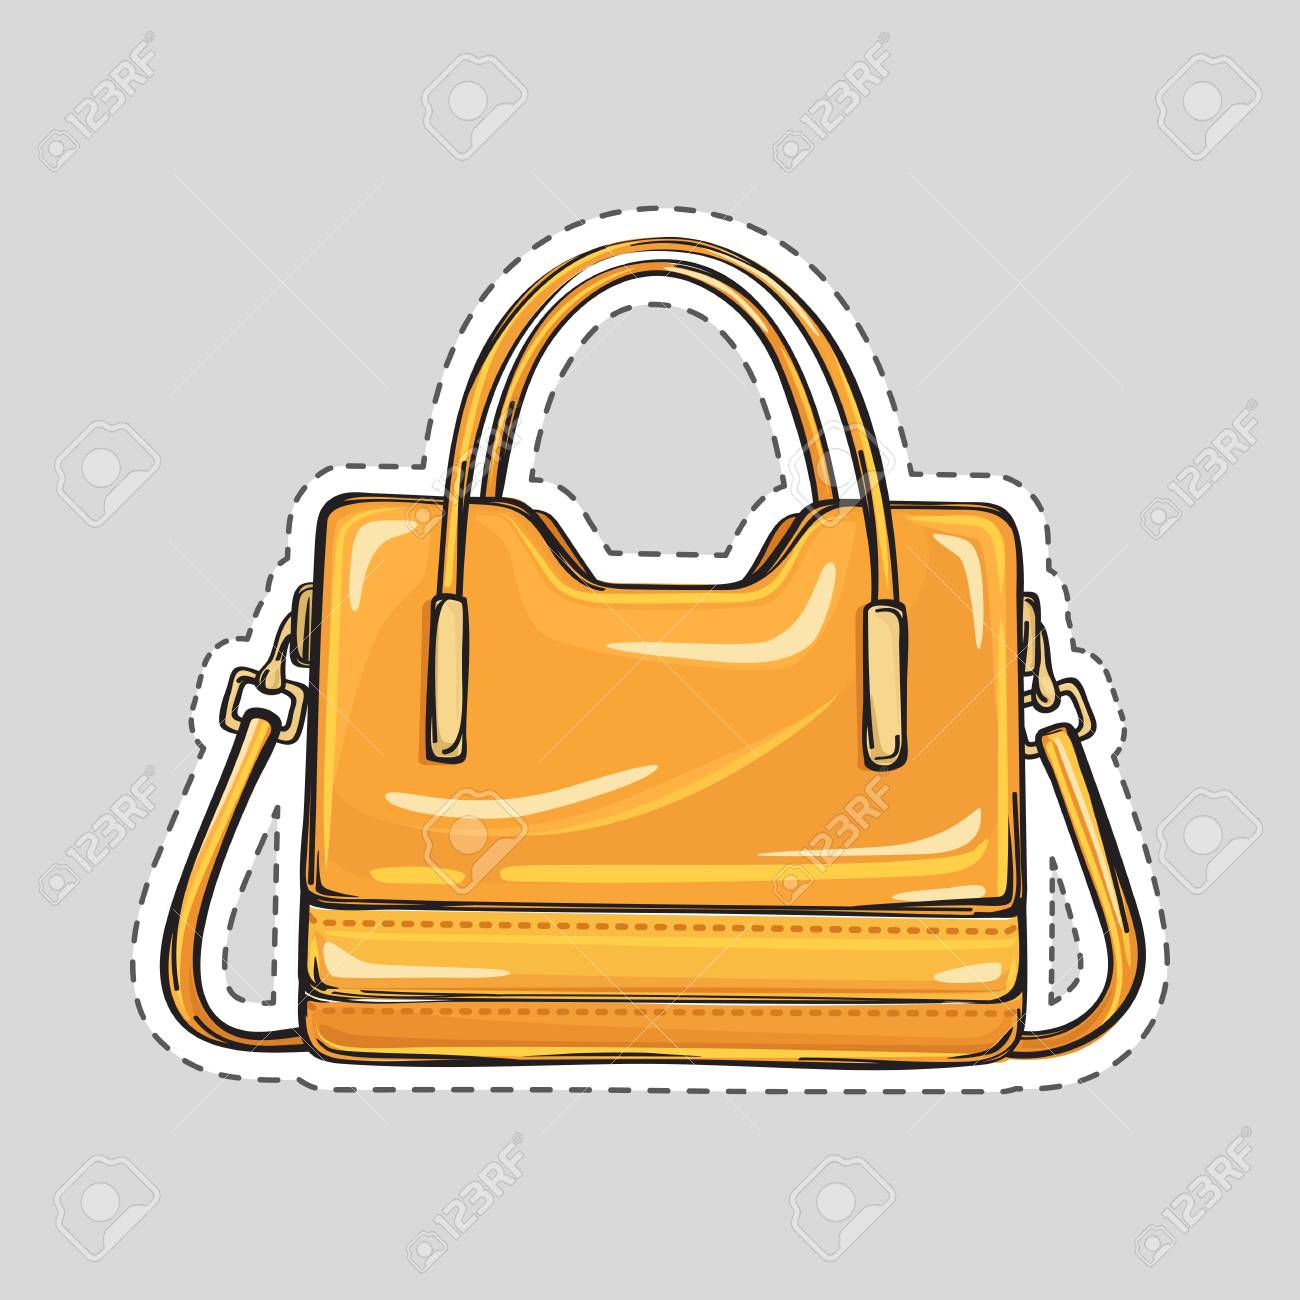 1128ae64de Ladies handbag with handle and clips isolated in flat style. Patch icon.  Elegant orange